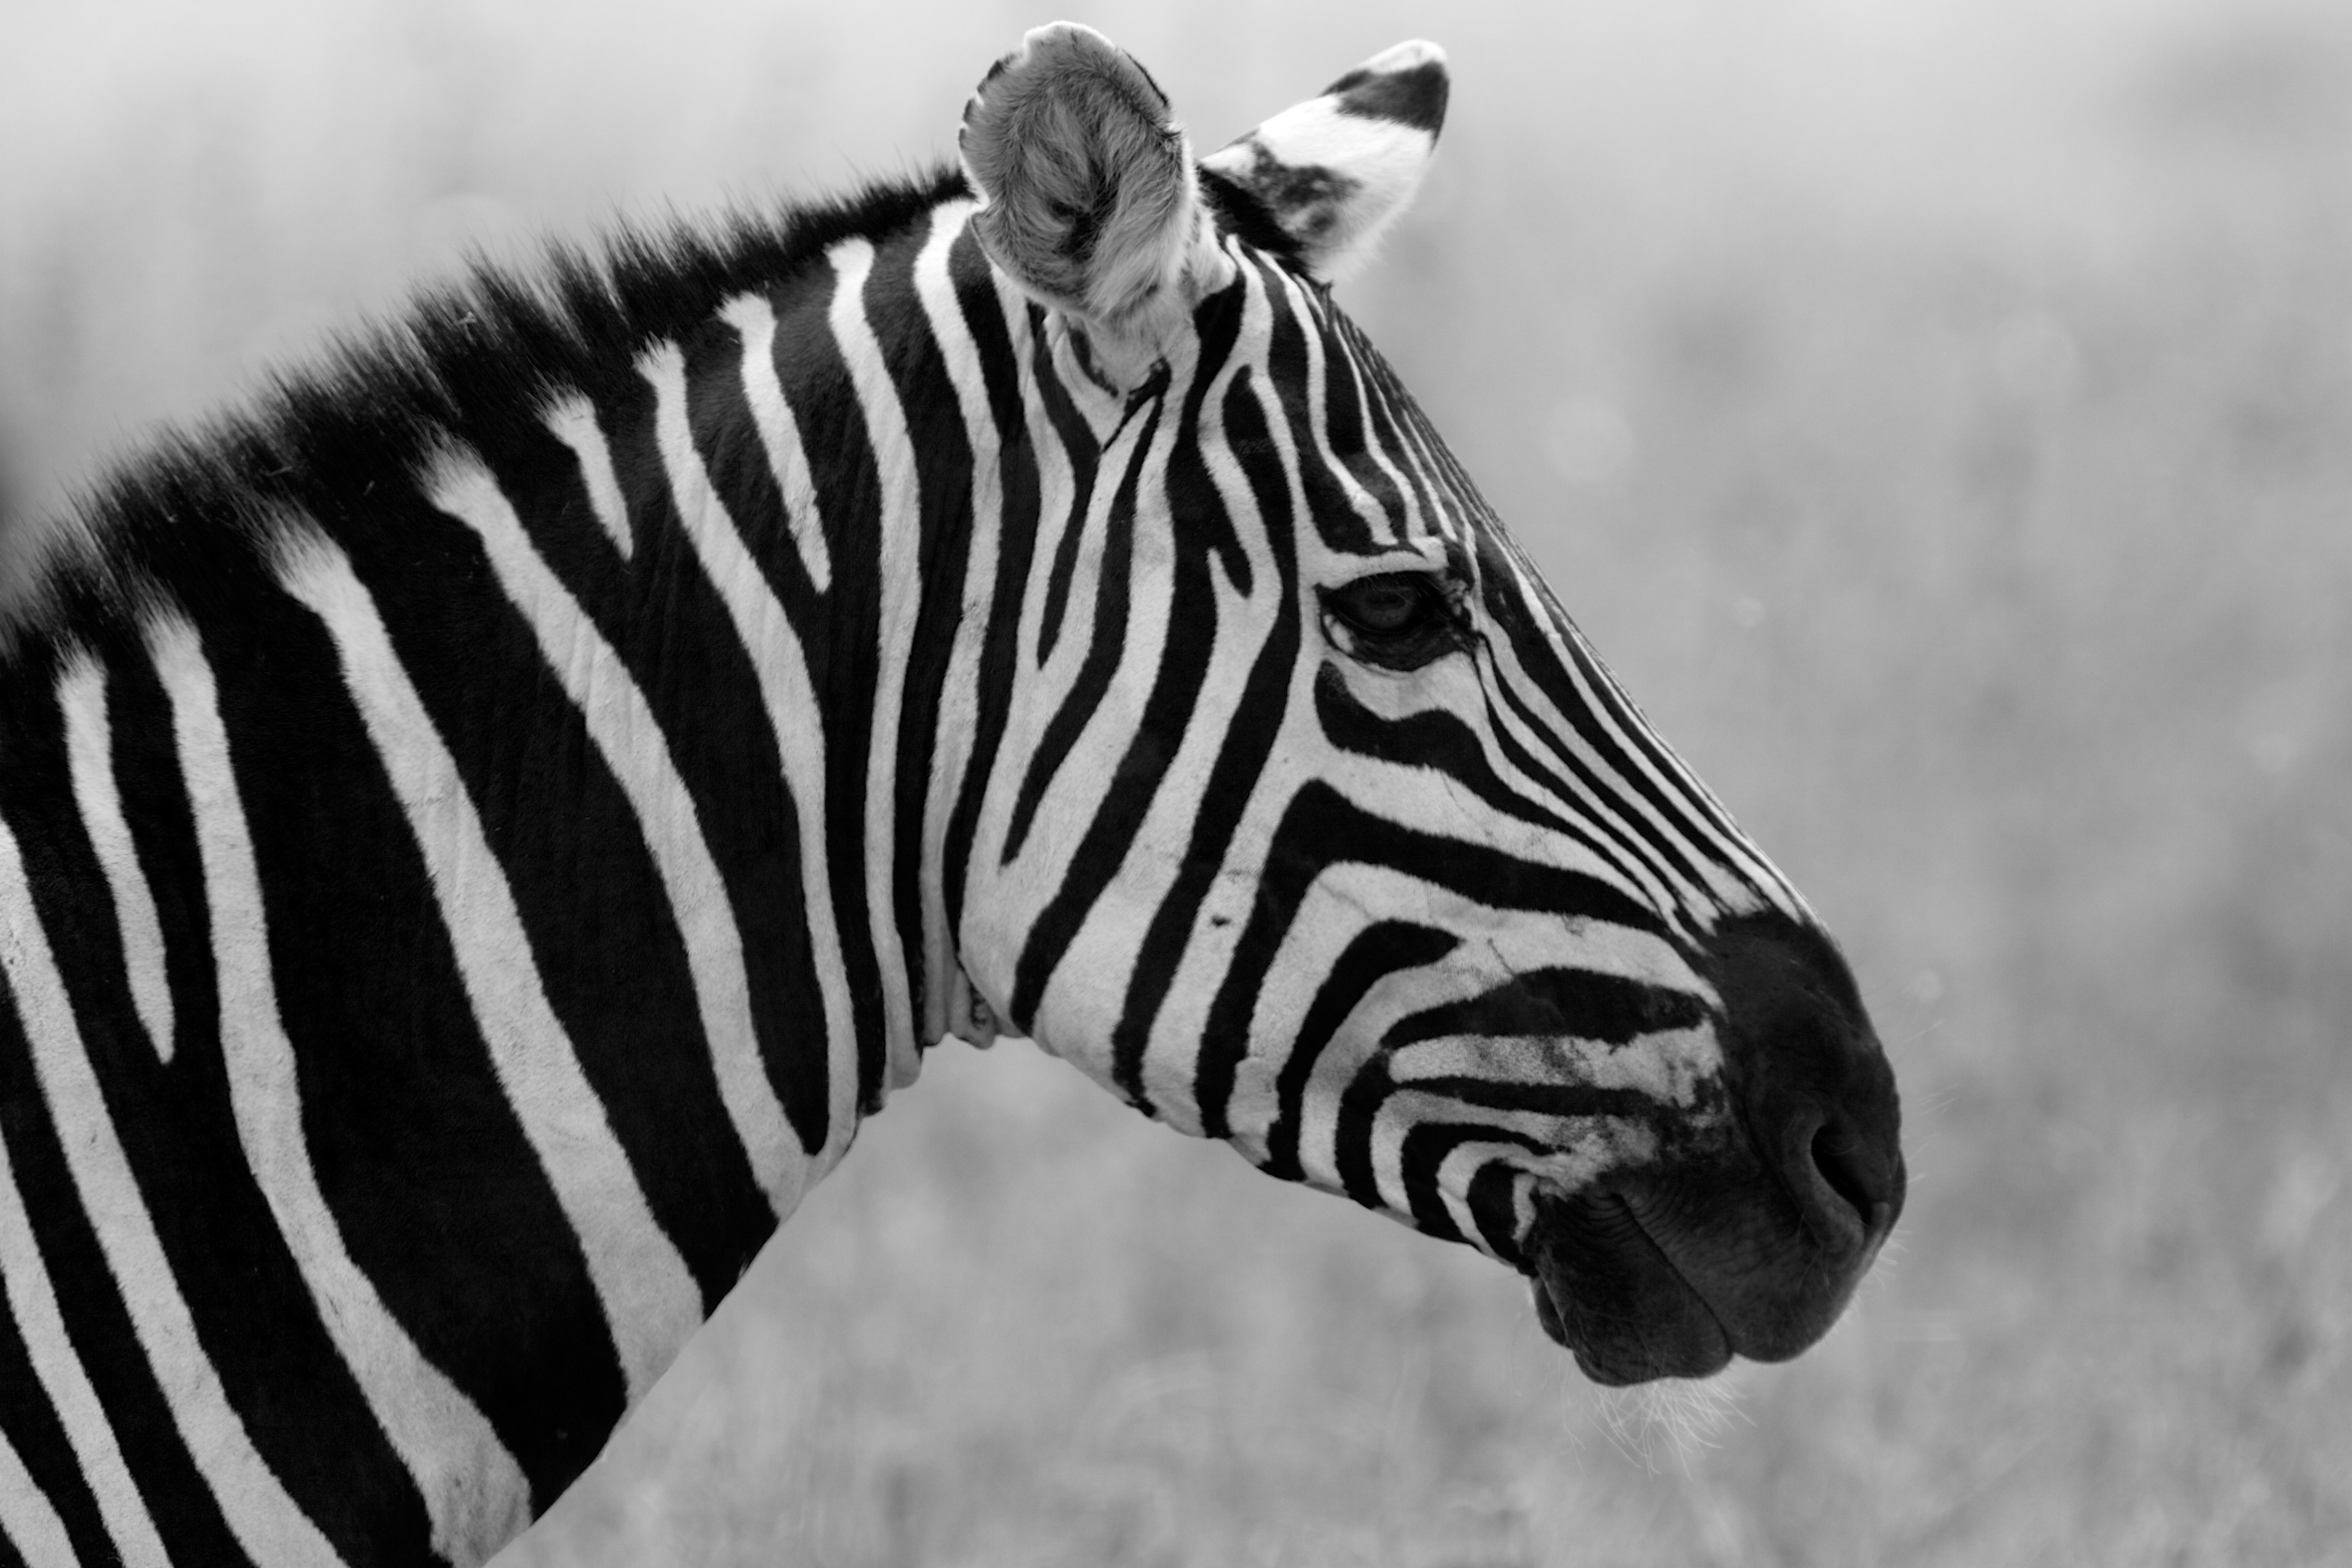 Black And White Animals Wallpapers High Quality Download